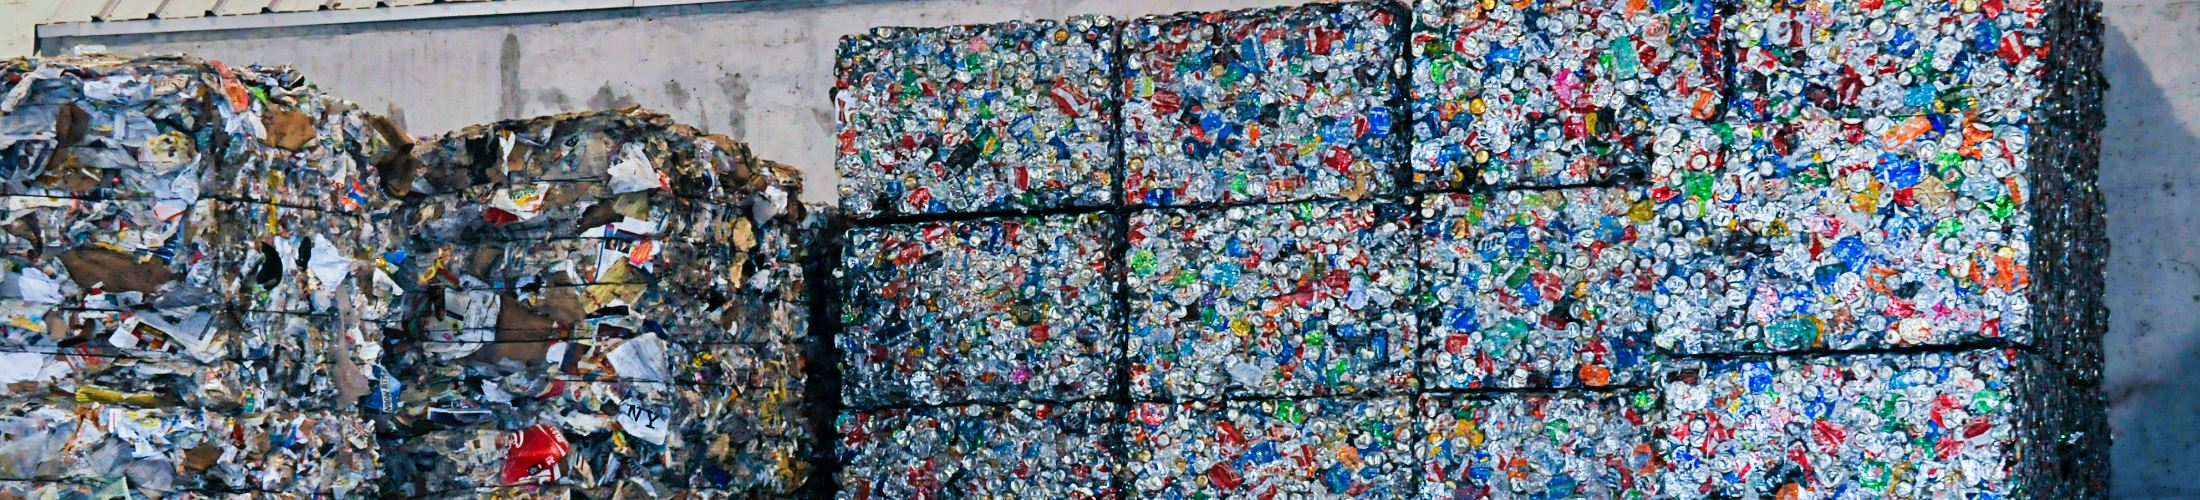 Compact bales of cans and other trash